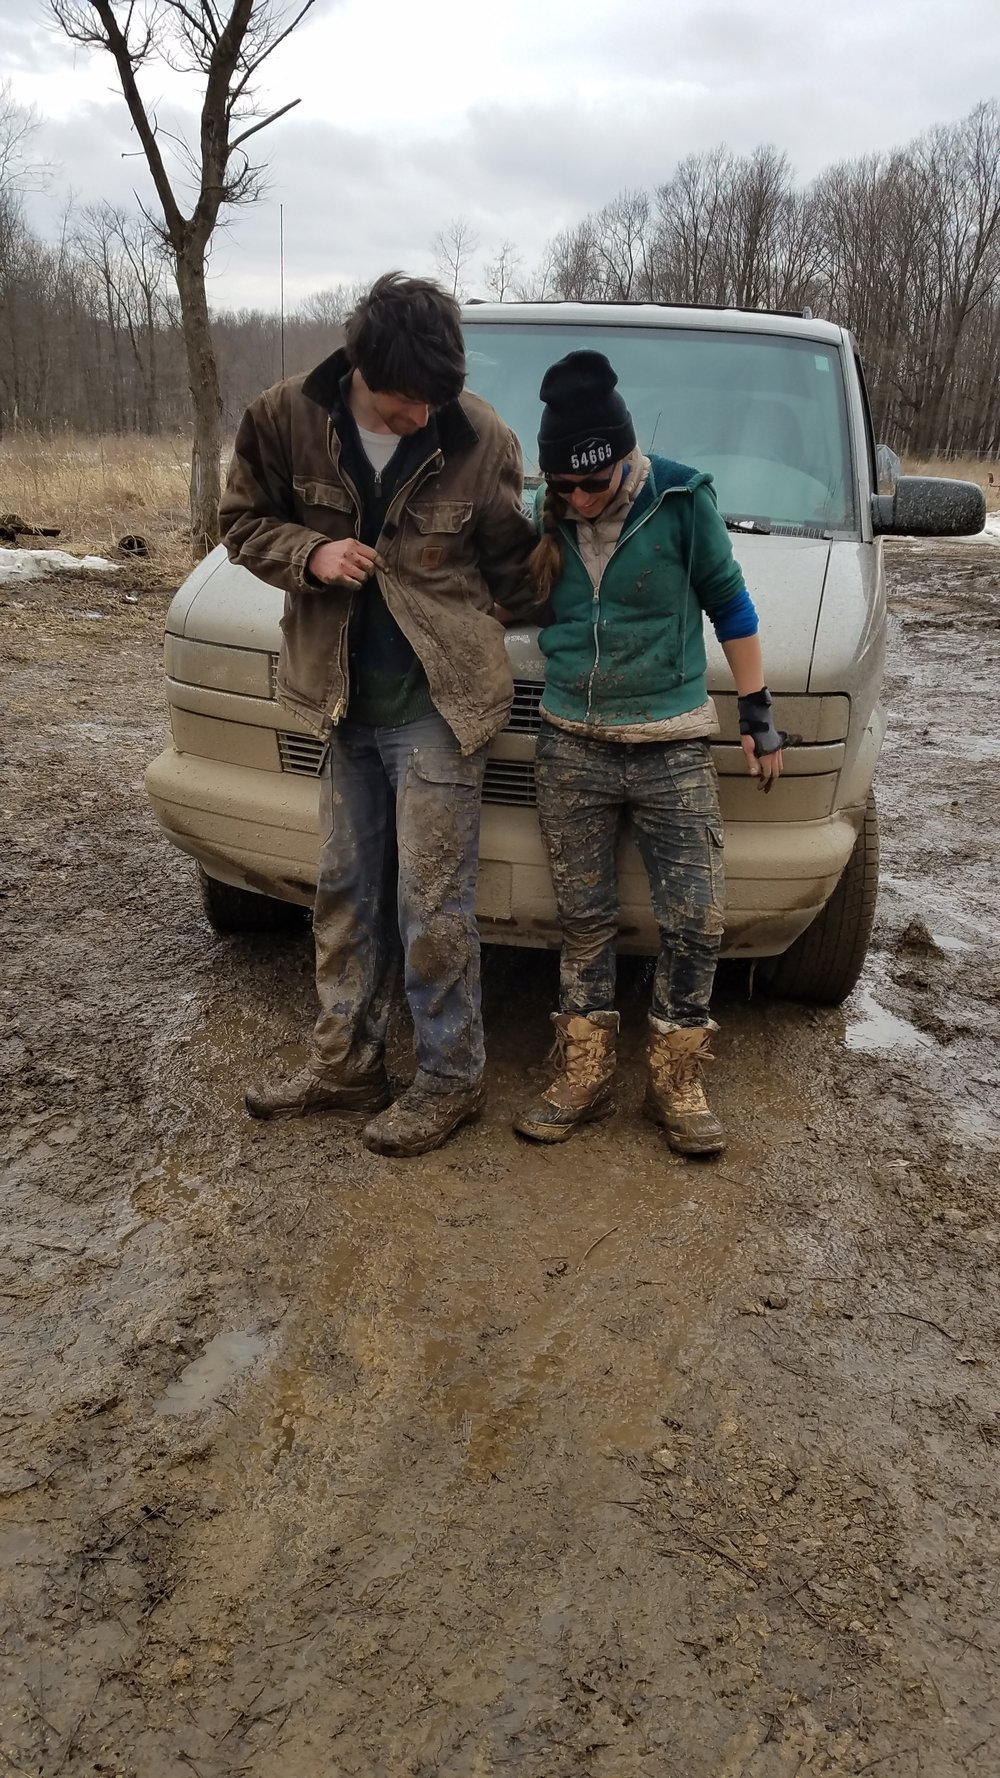 It's not usually this muddy, but it is good to be ready!